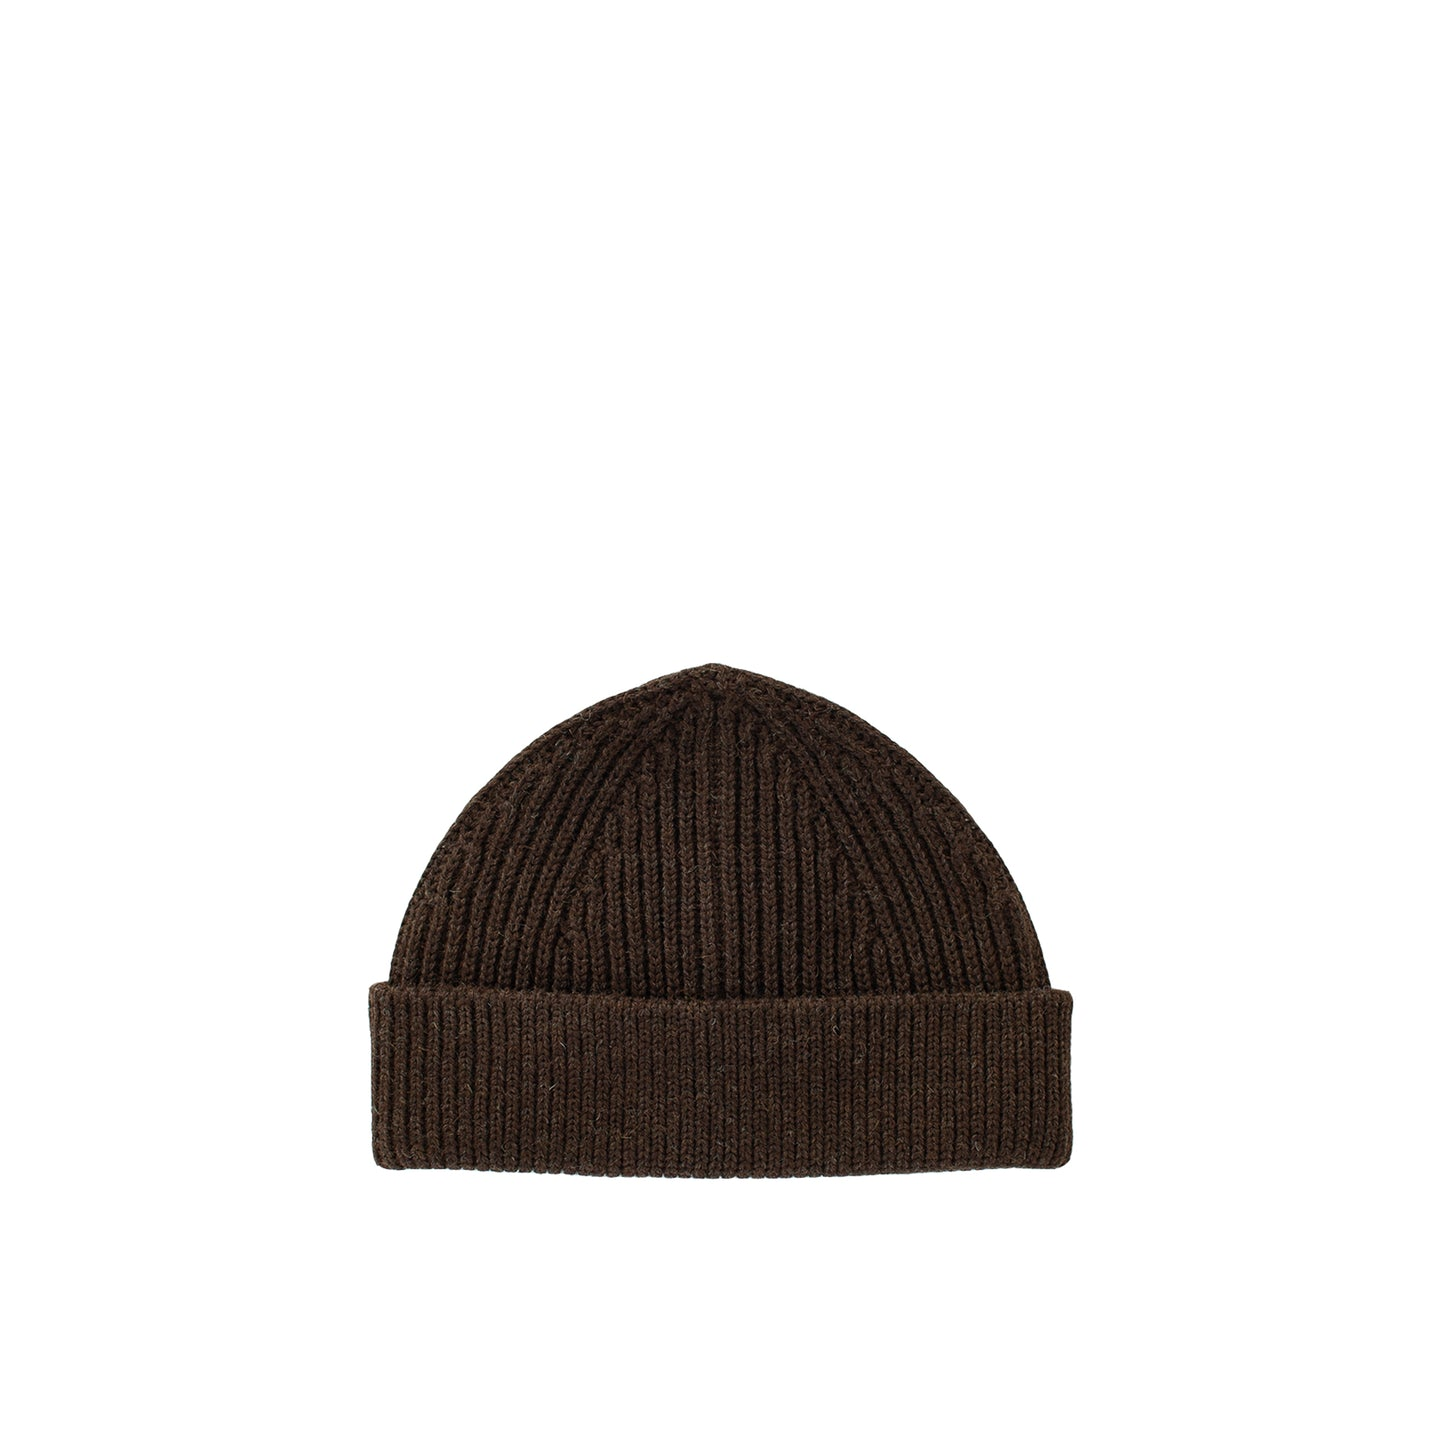 Beanie Short - Natural Brown